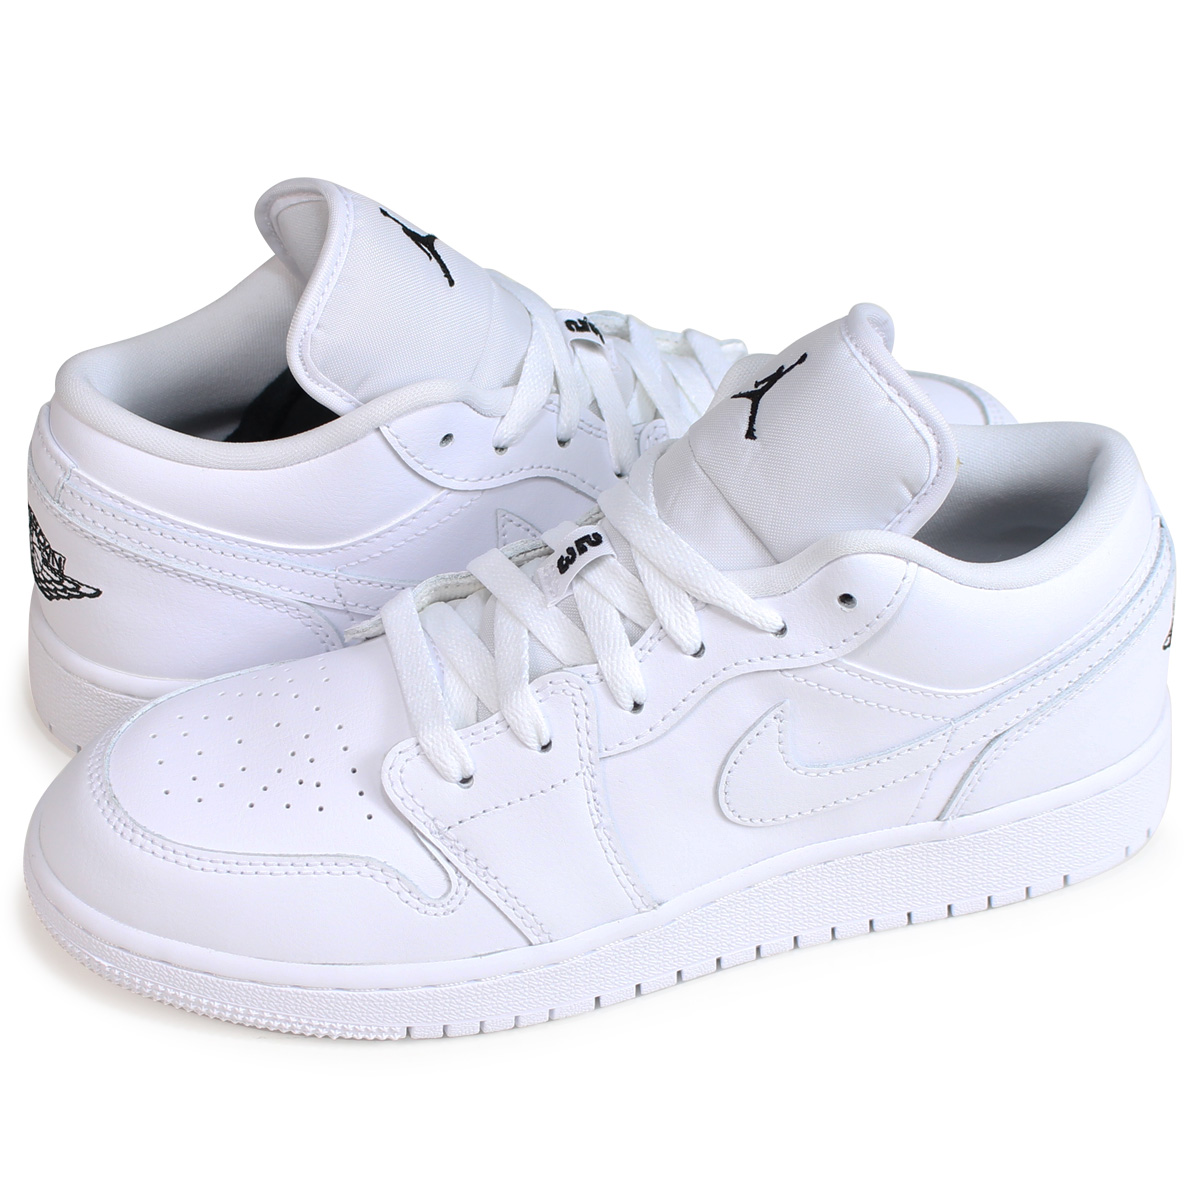 detailed look d0d06 6967a NIKE Nike Air Jordan 1 Lady's sneakers AIR JORDAN 1 LOW GS 553,560-110  white [load planned Shinnyu load in reservation product 7/24 containing]